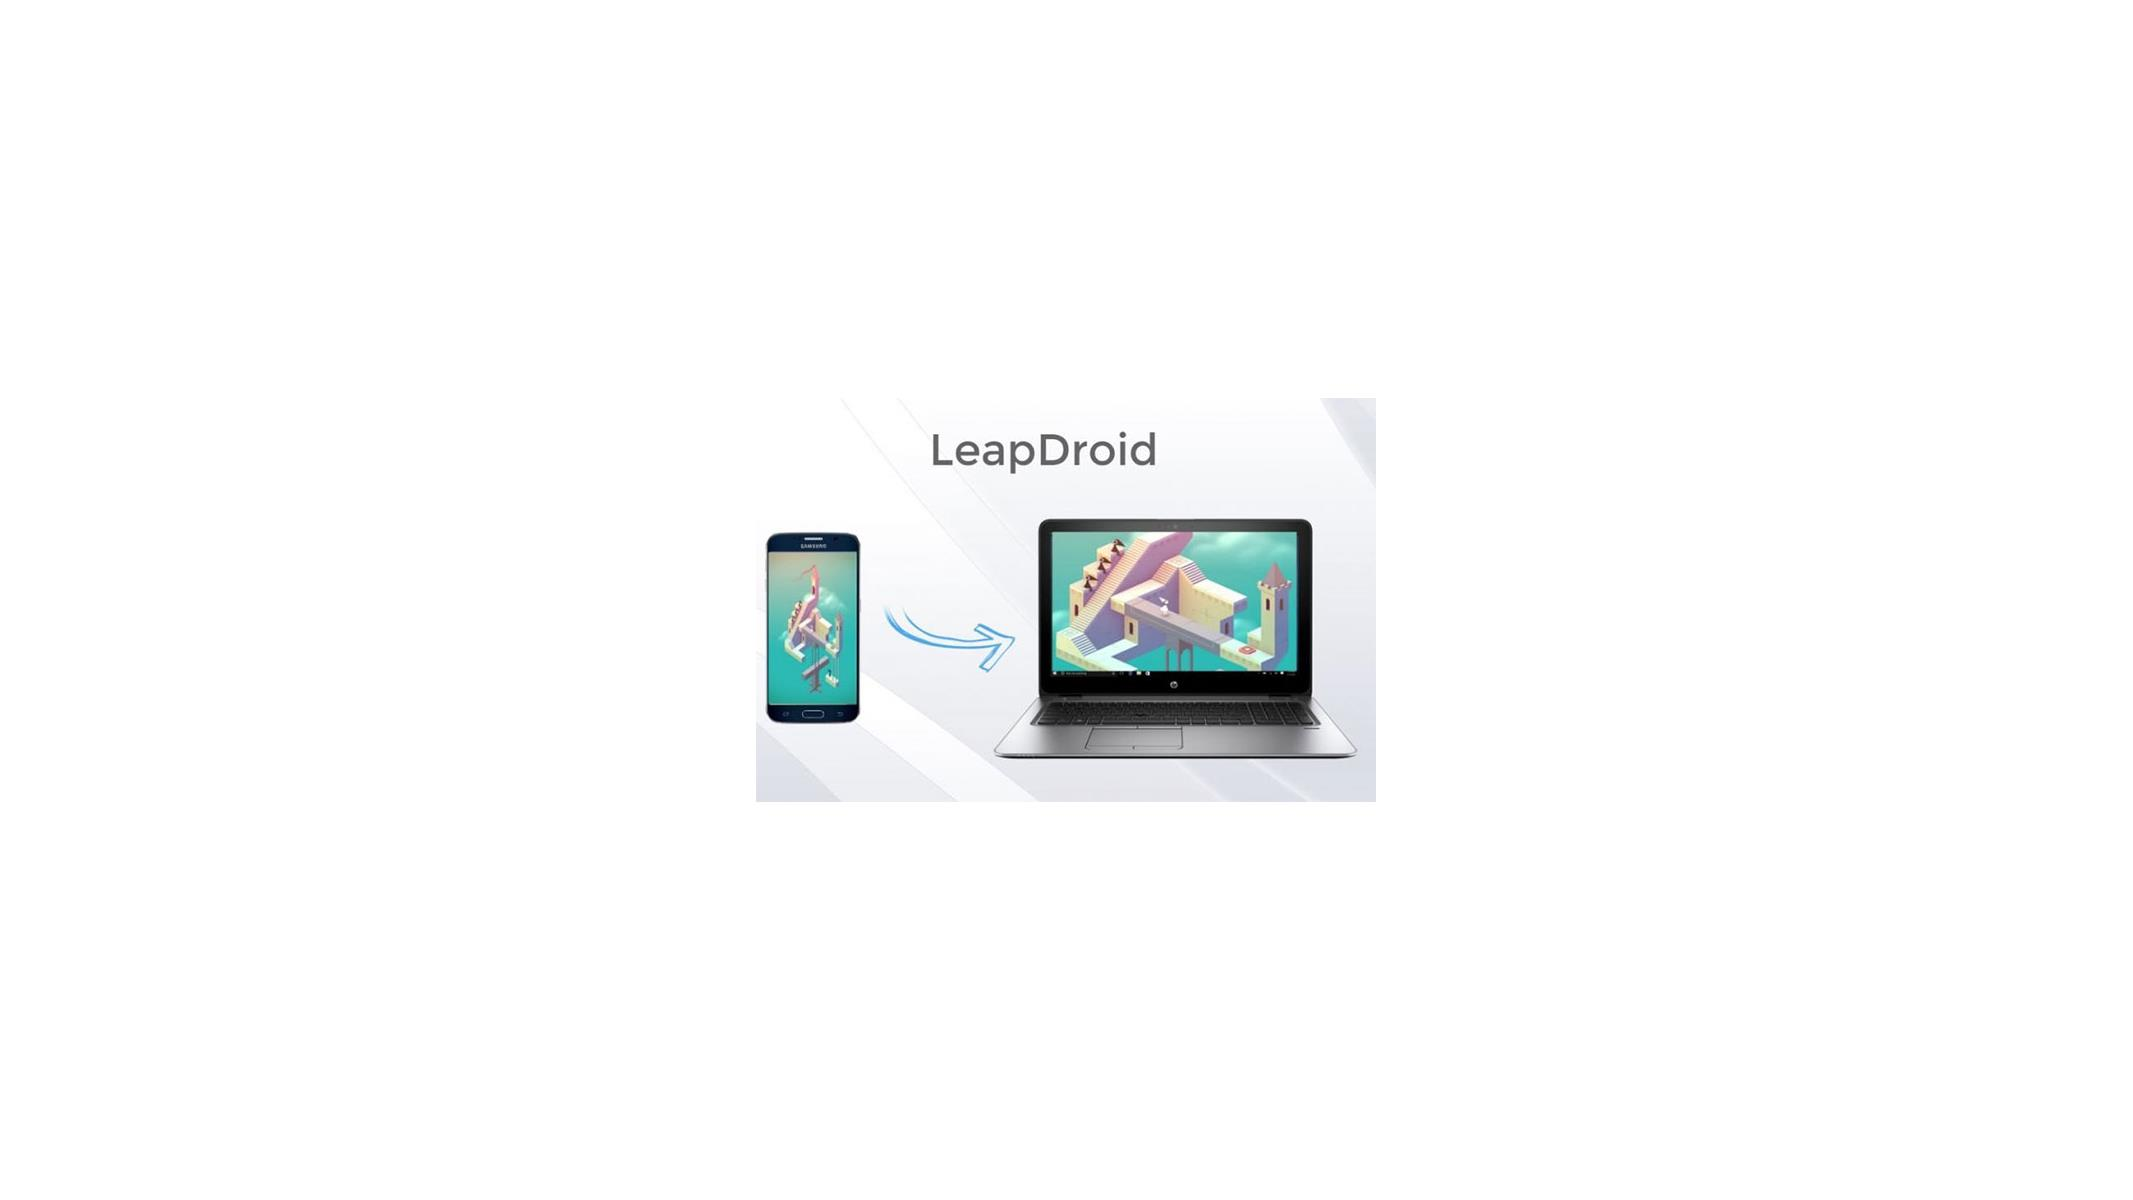 Google Acquires LeapDroid Android Emulator, Could Bolster Hybrid